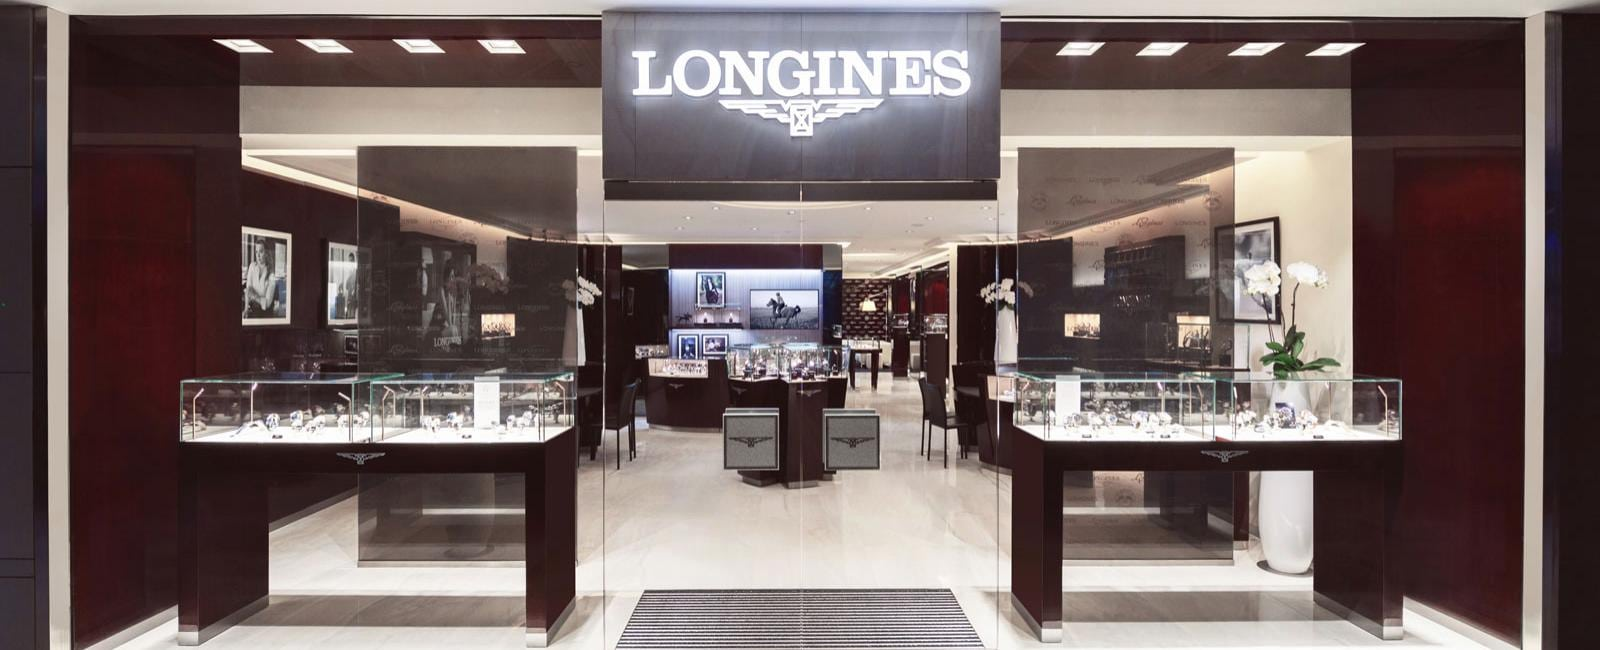 BOUTIQUE IN ORCHARD ROAD, SINGAPORE, Flagship store